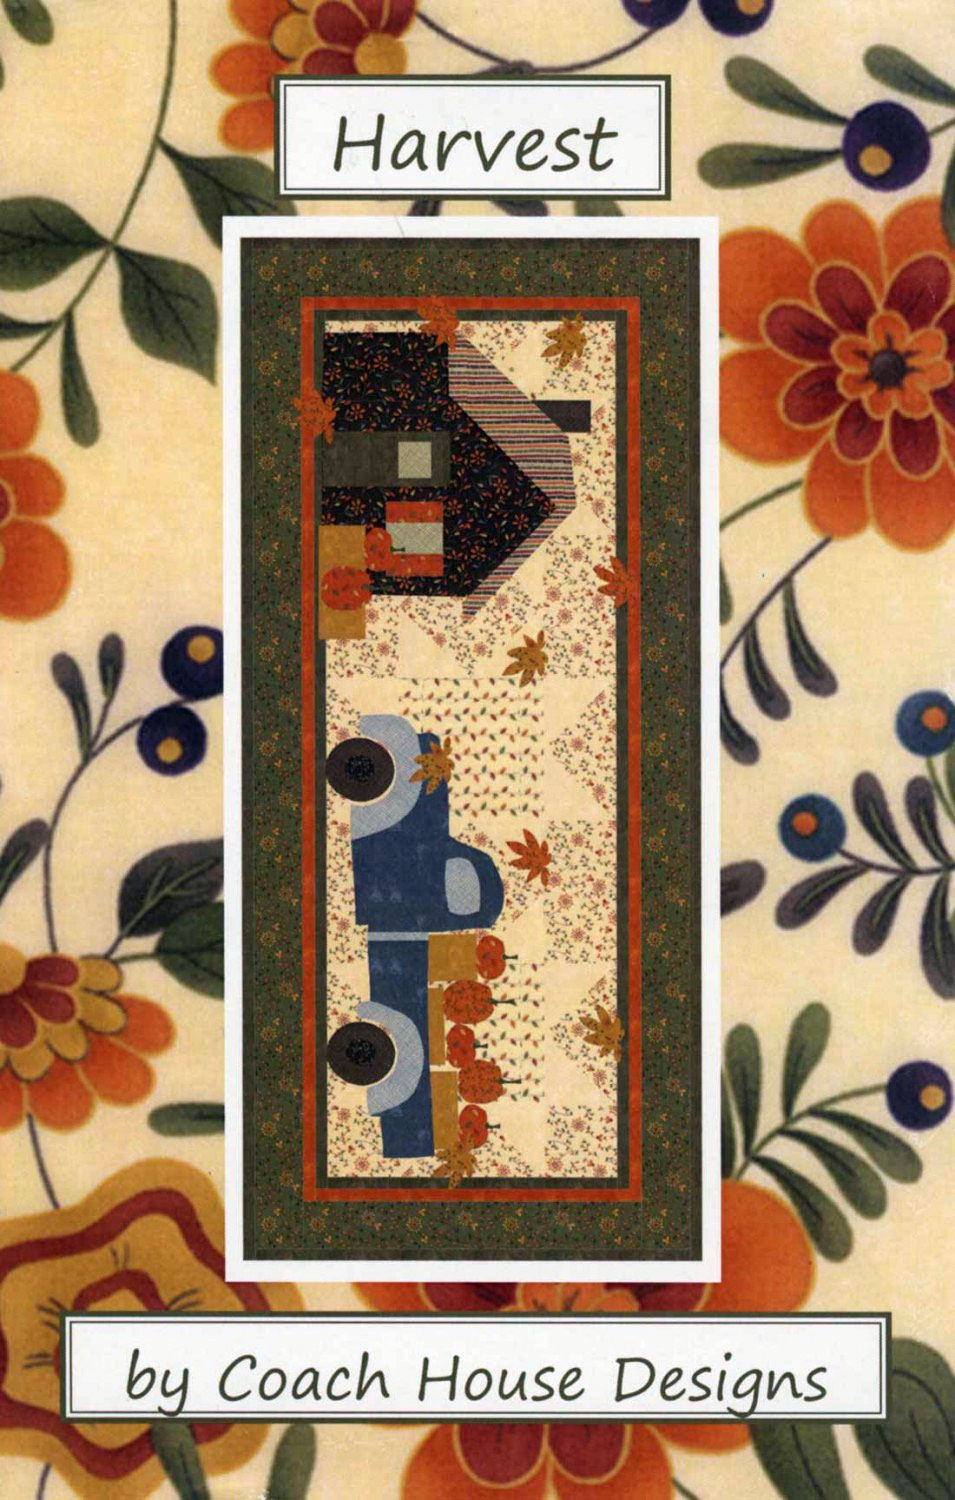 Harvest-quilt-sewing-pattern-Coach-House-Designs-front